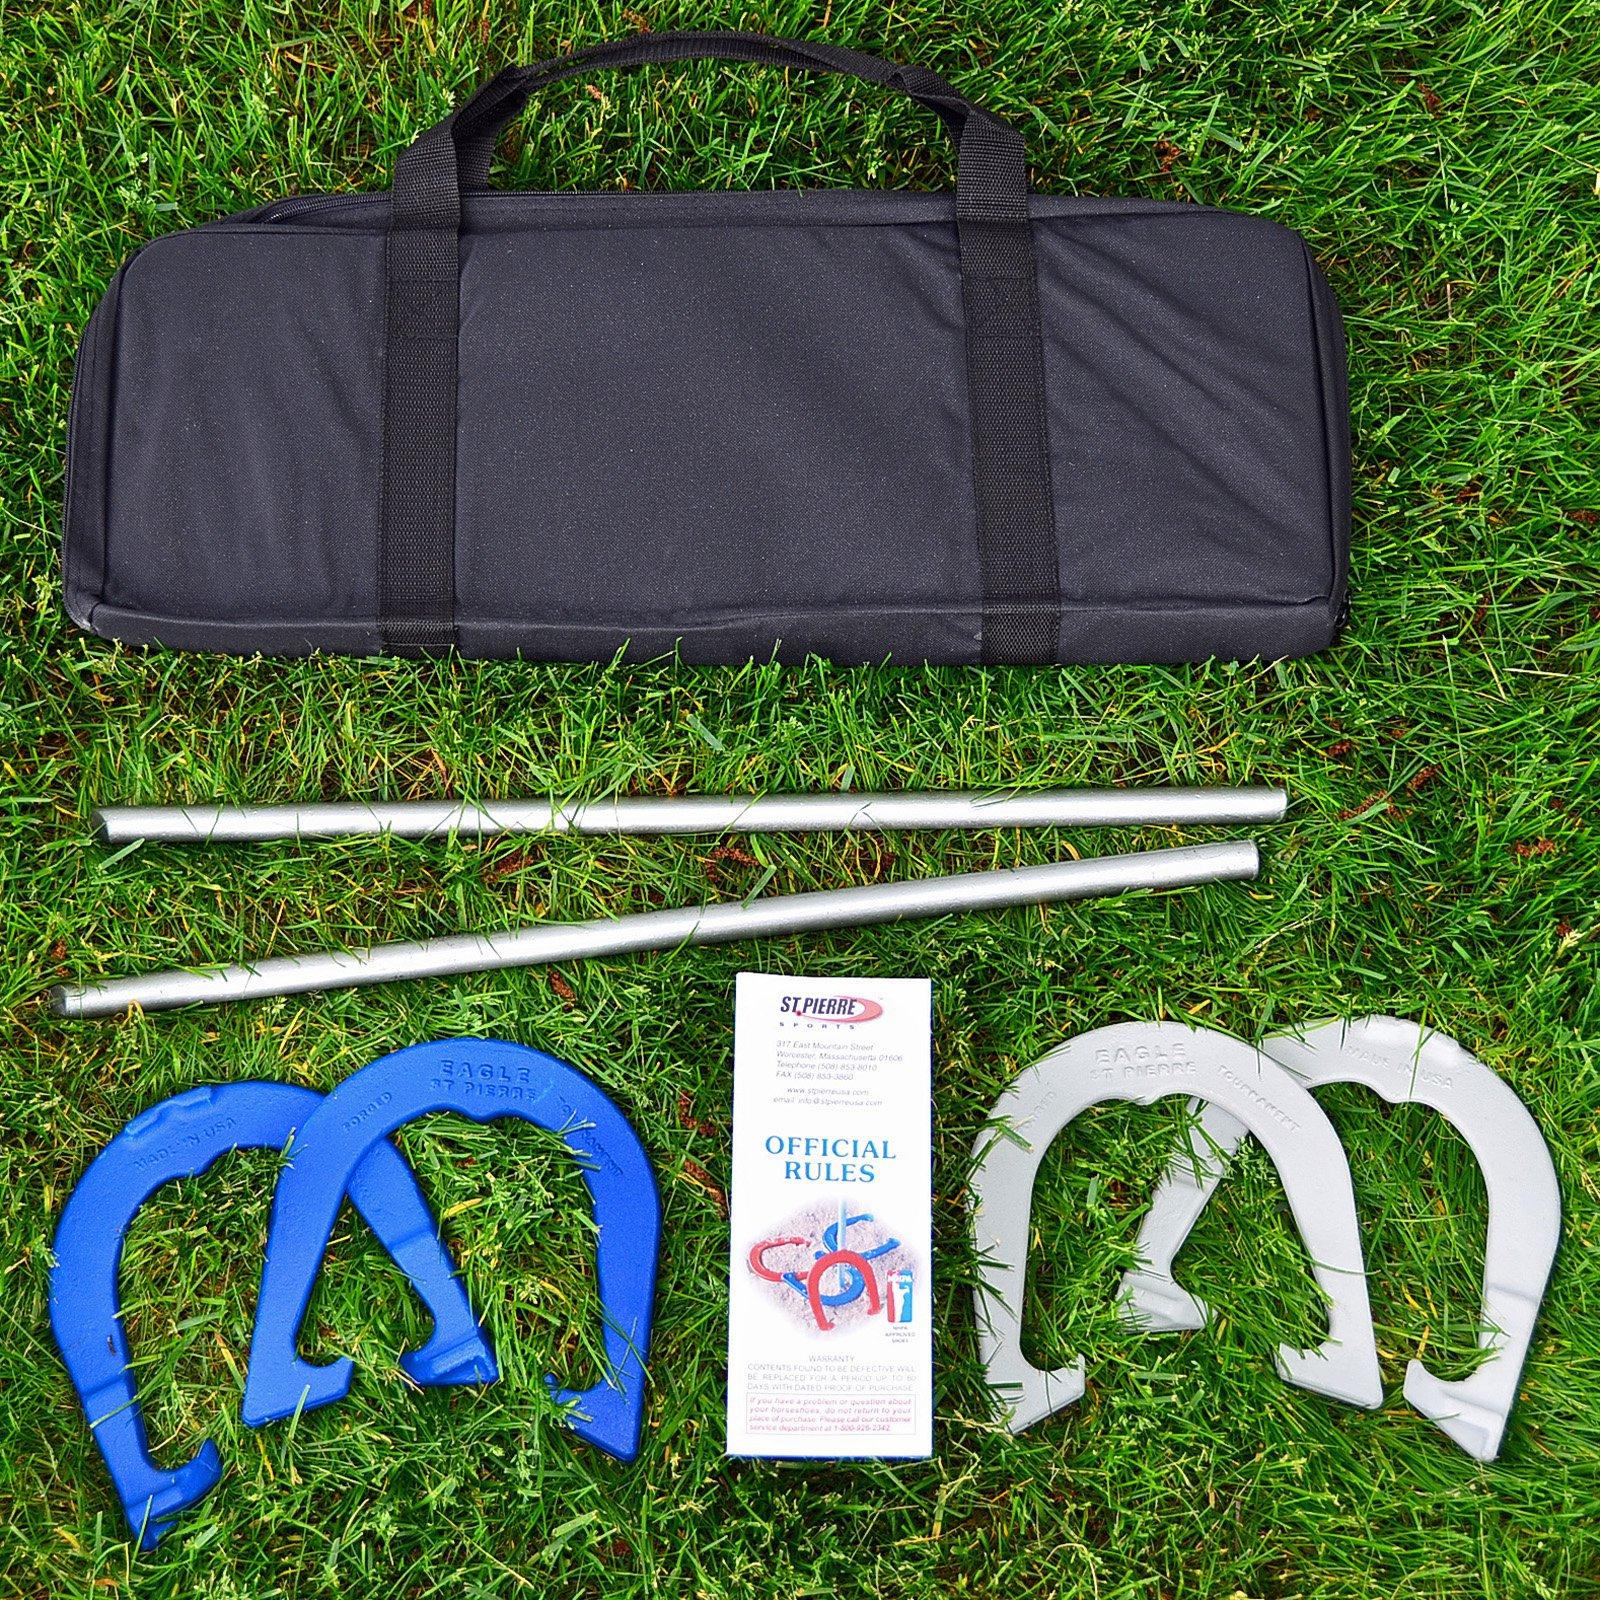 St. Pierre Eagle Tournament Horseshoe Outfit with Nylon Bag